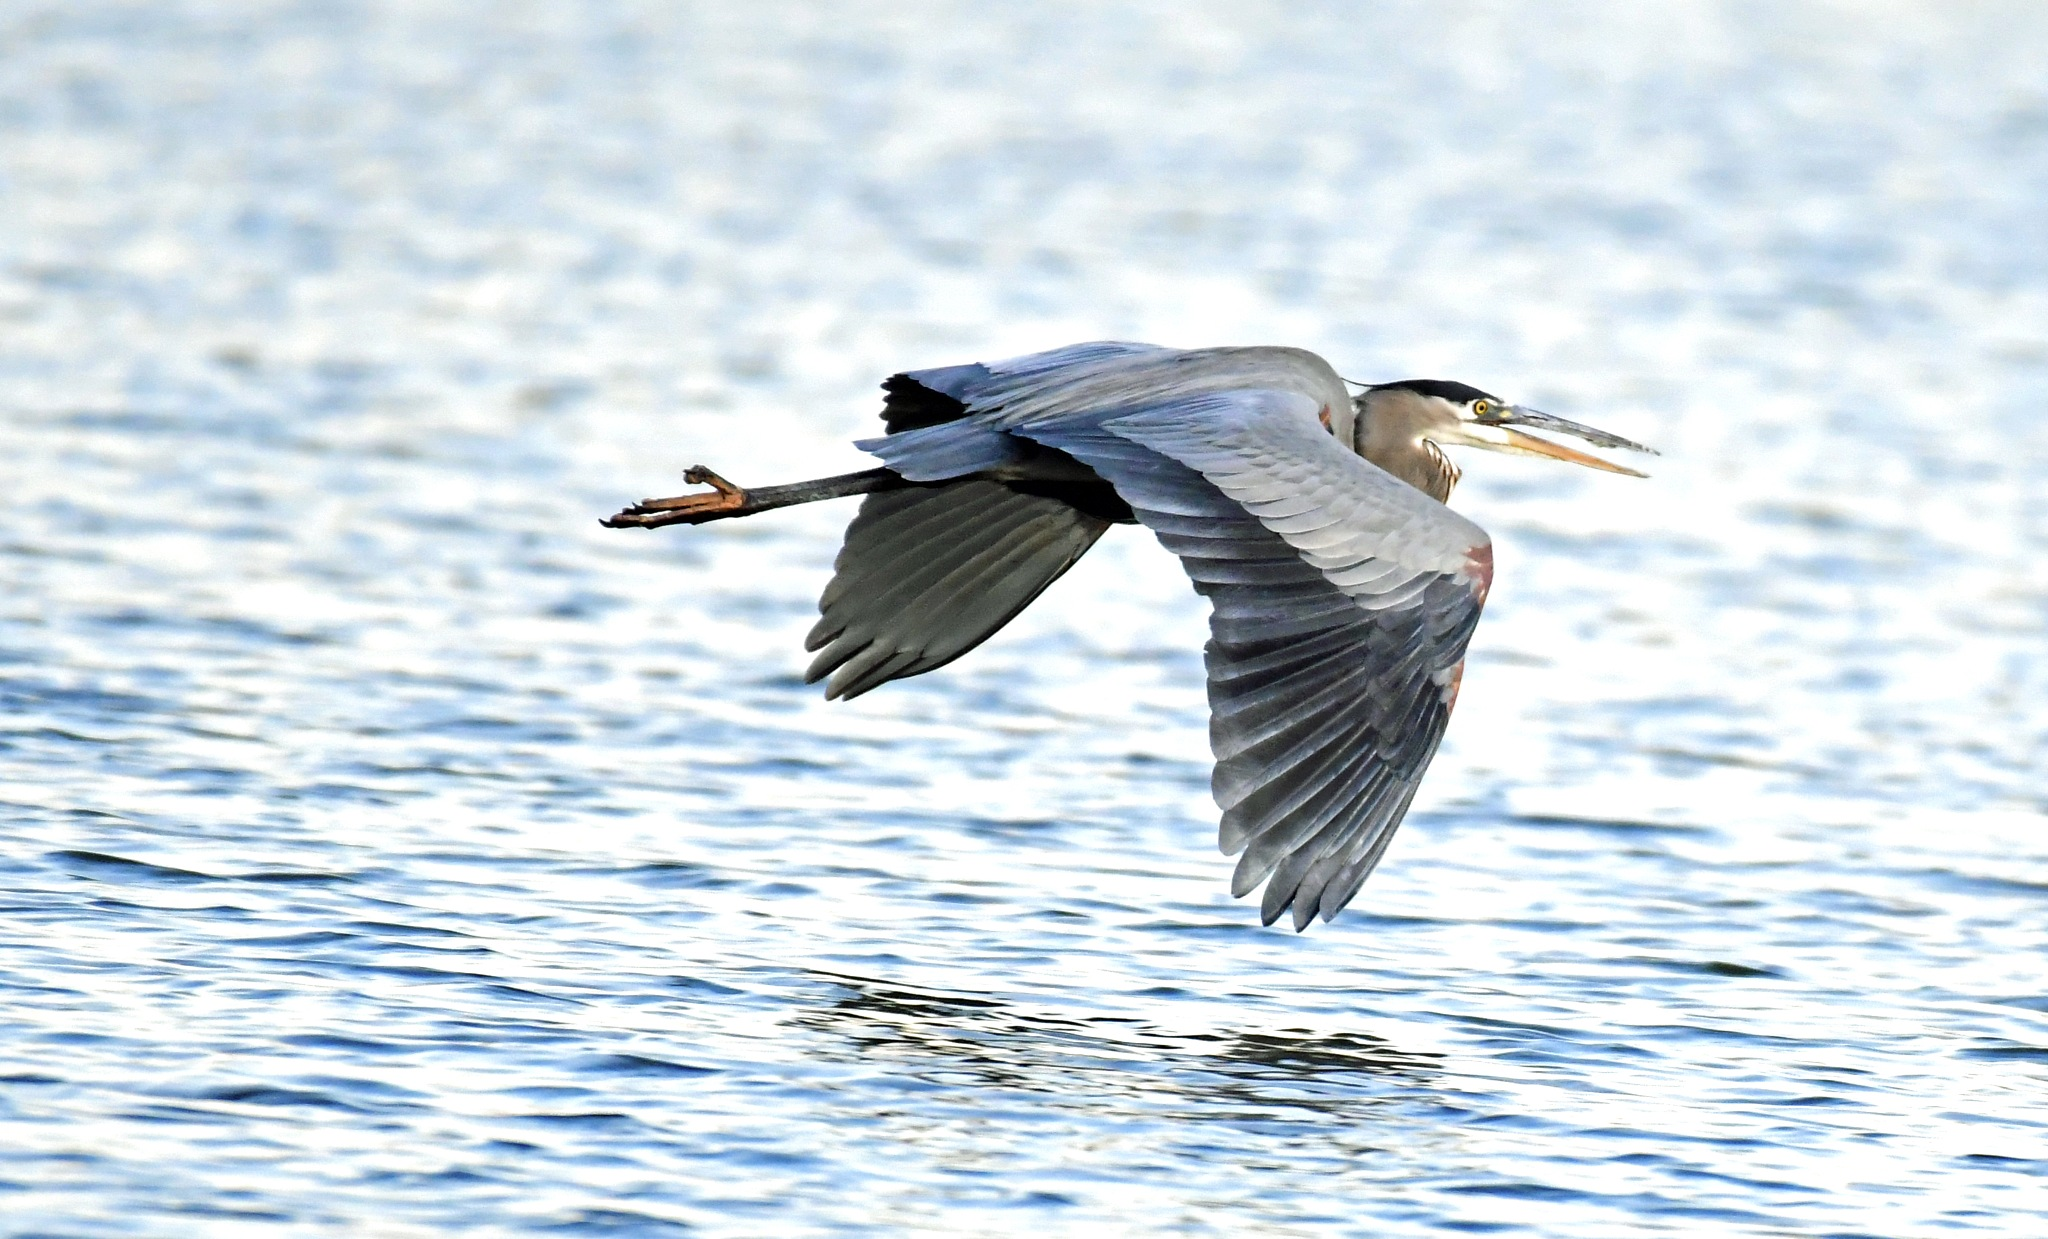 Flying Low Great Blue Heron by Tommy Slane